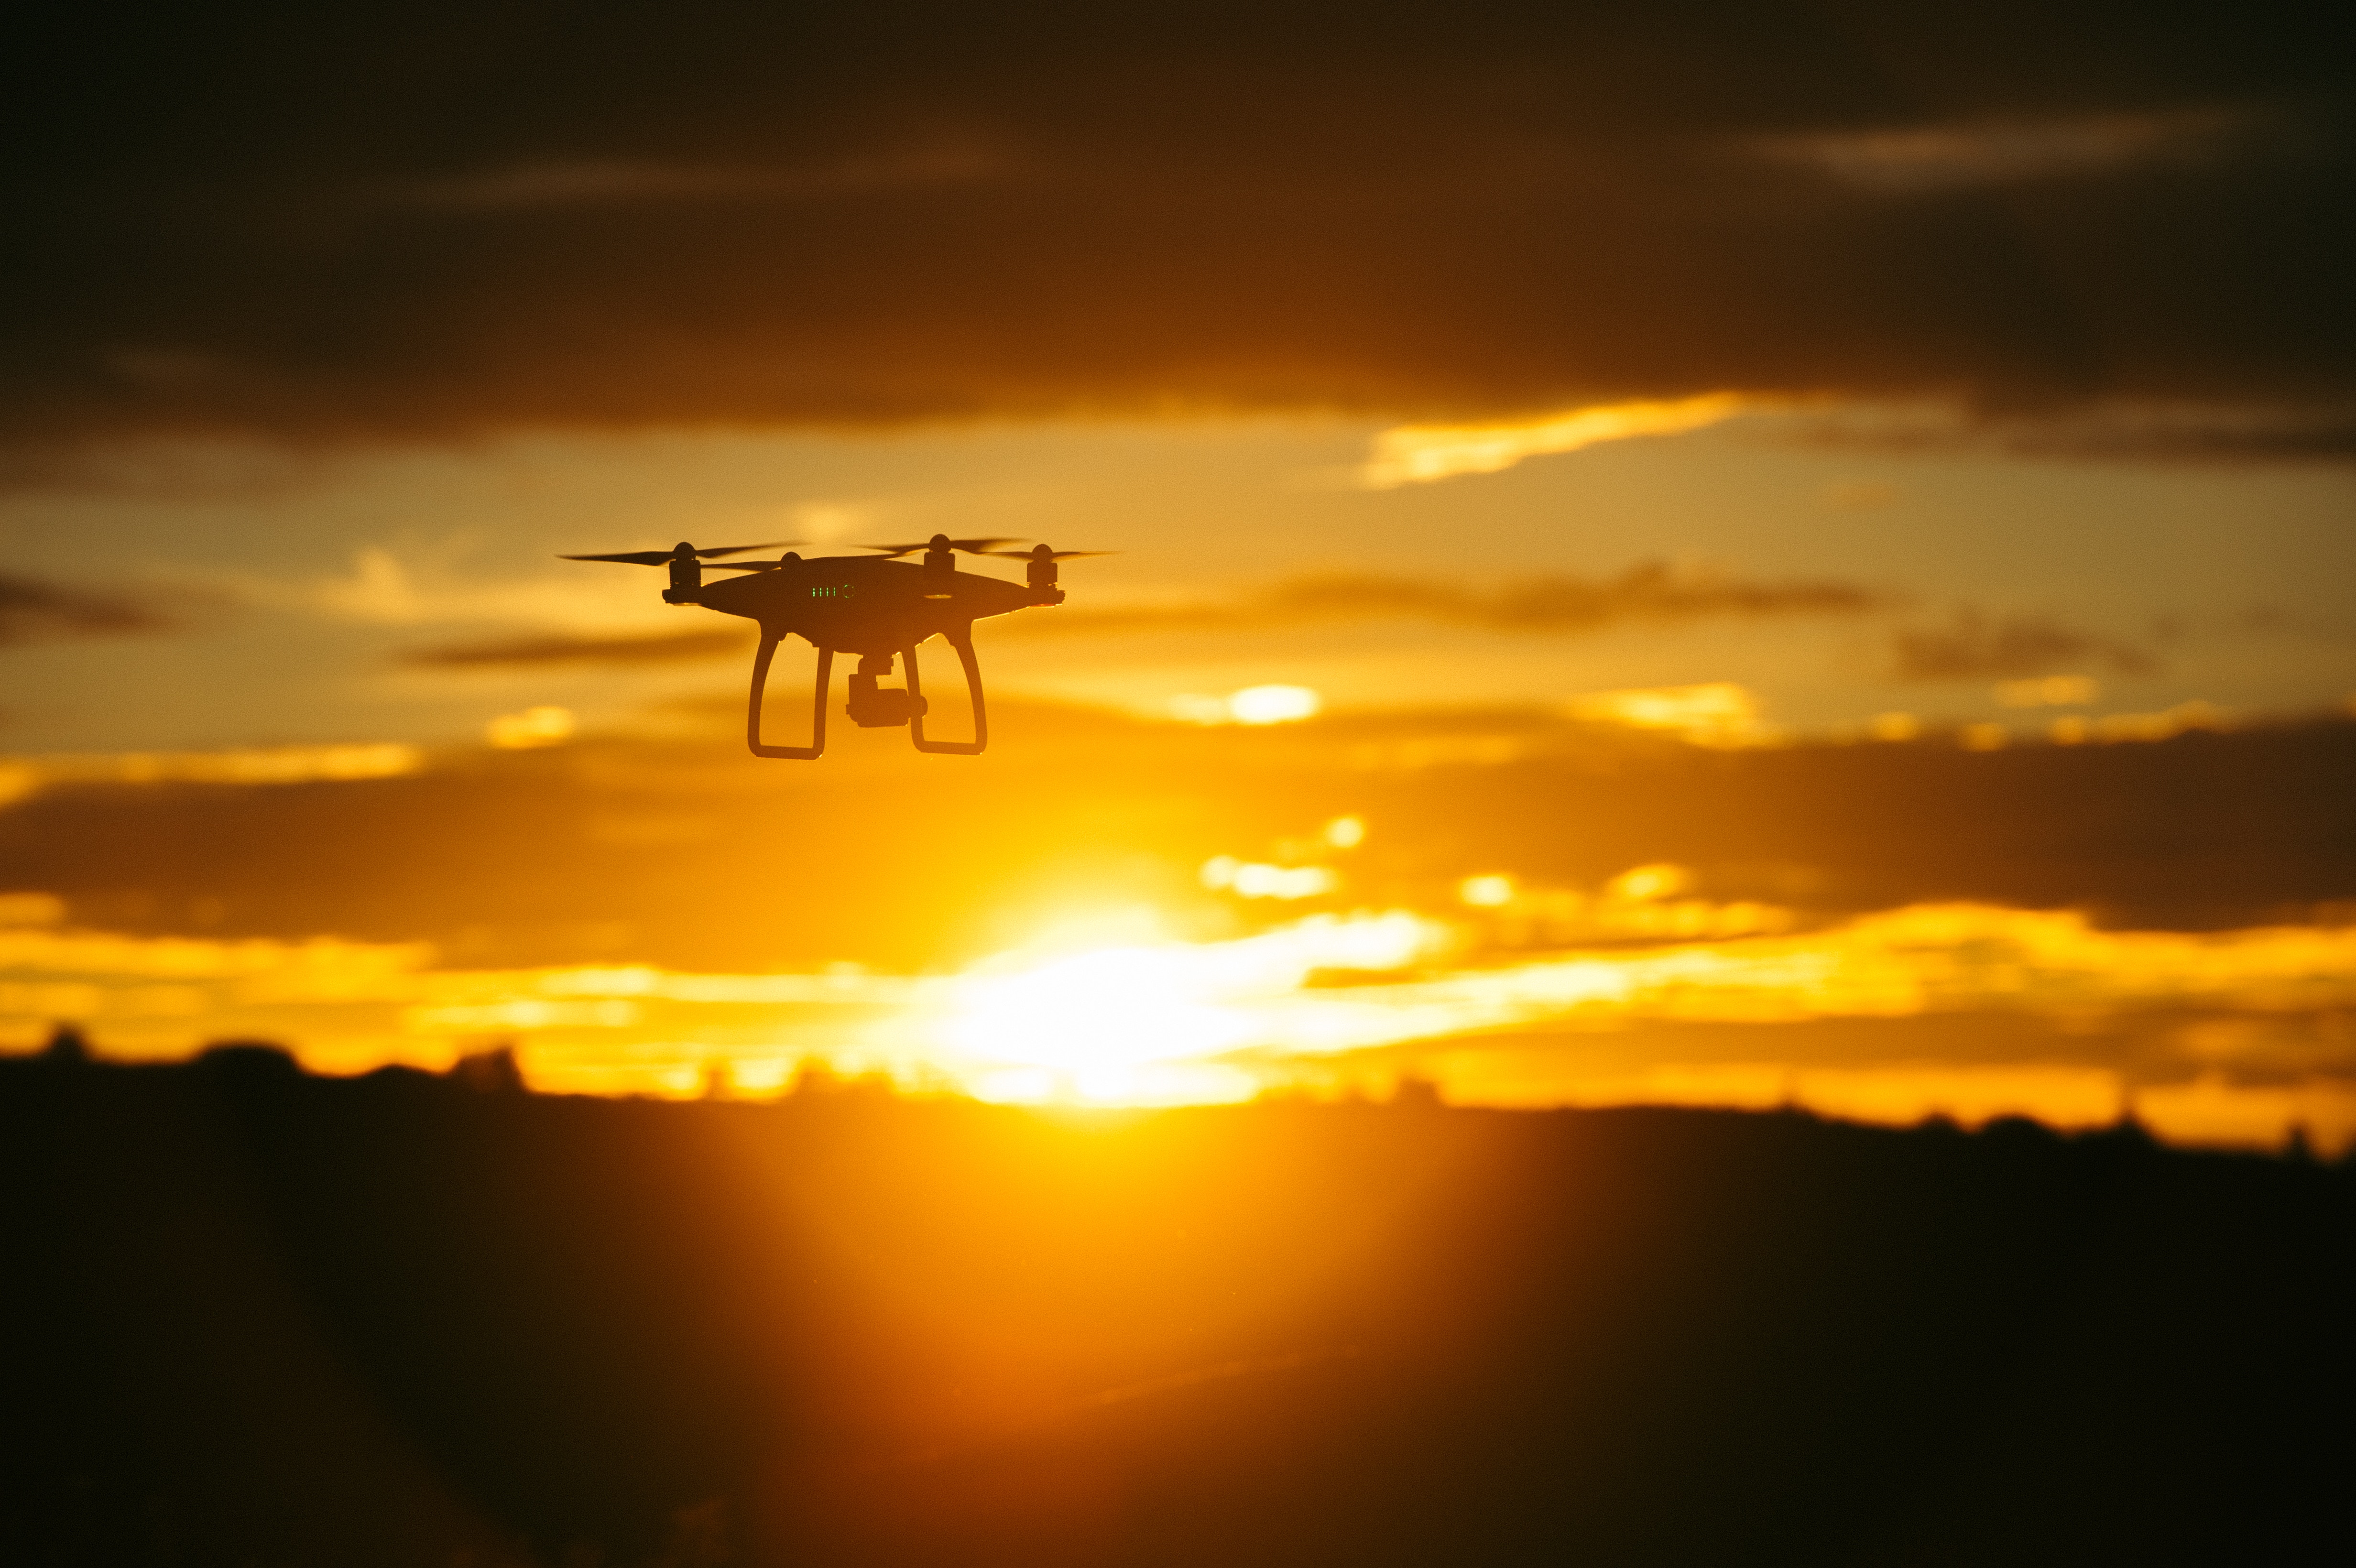 Using Drone Technology to our Advantage